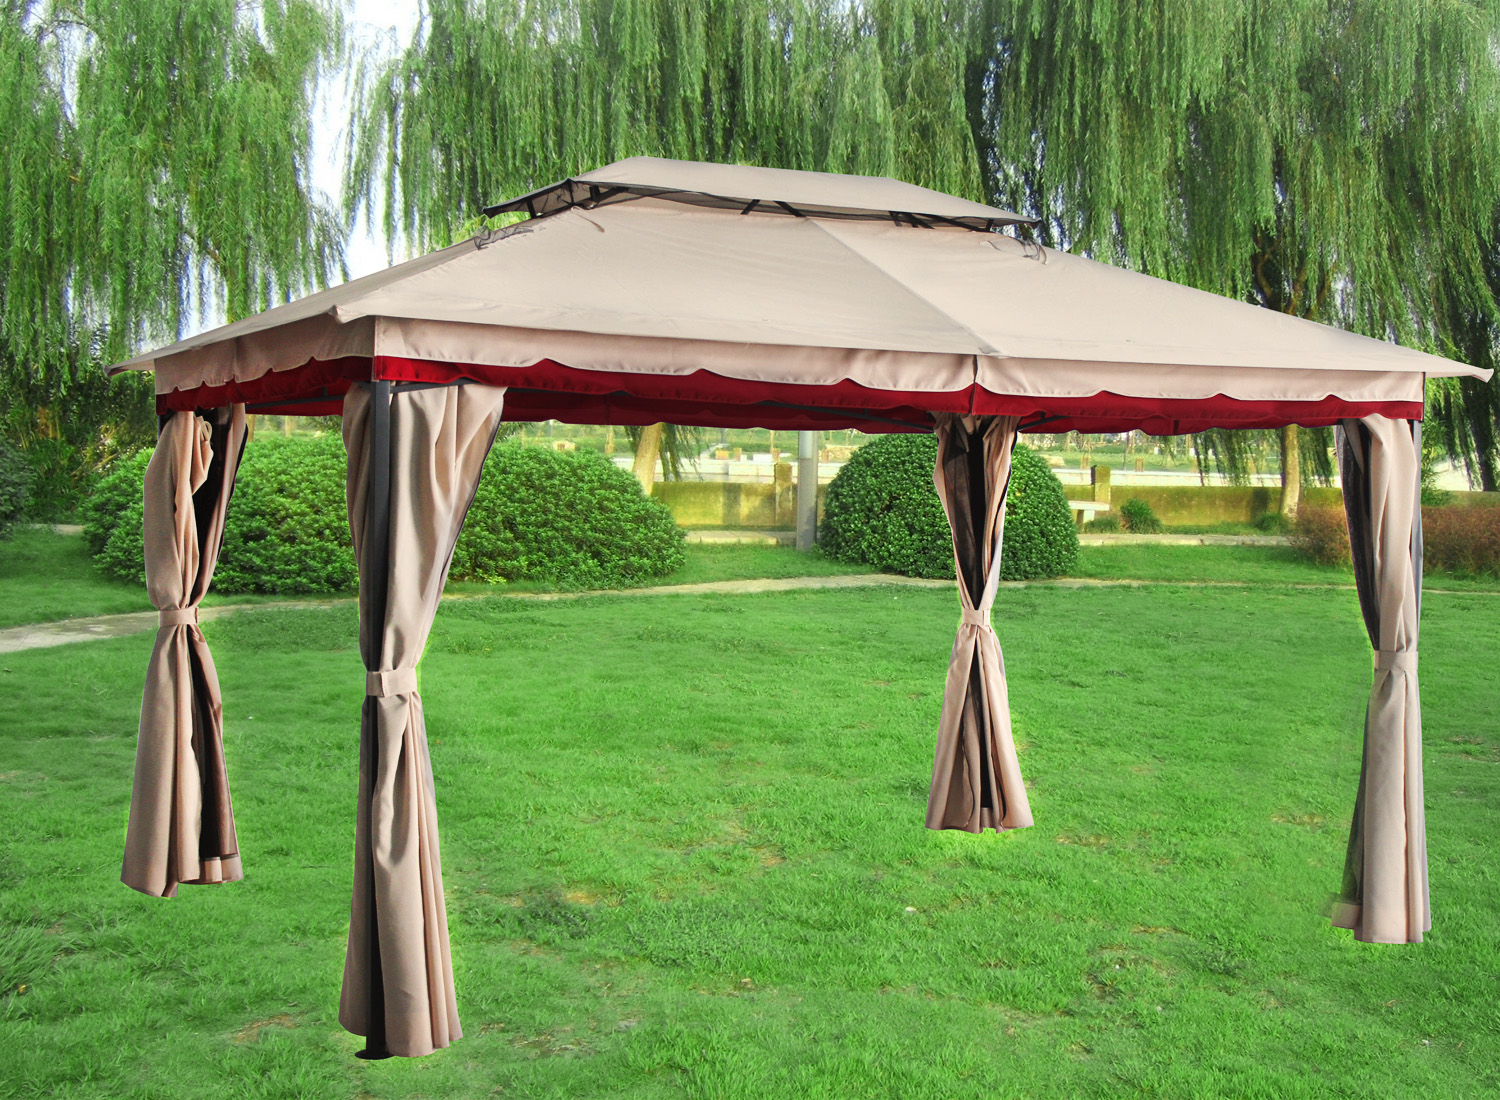 3x4m Deluxe Metal Pavilion Gazebo Awning Canopy Sun Shade